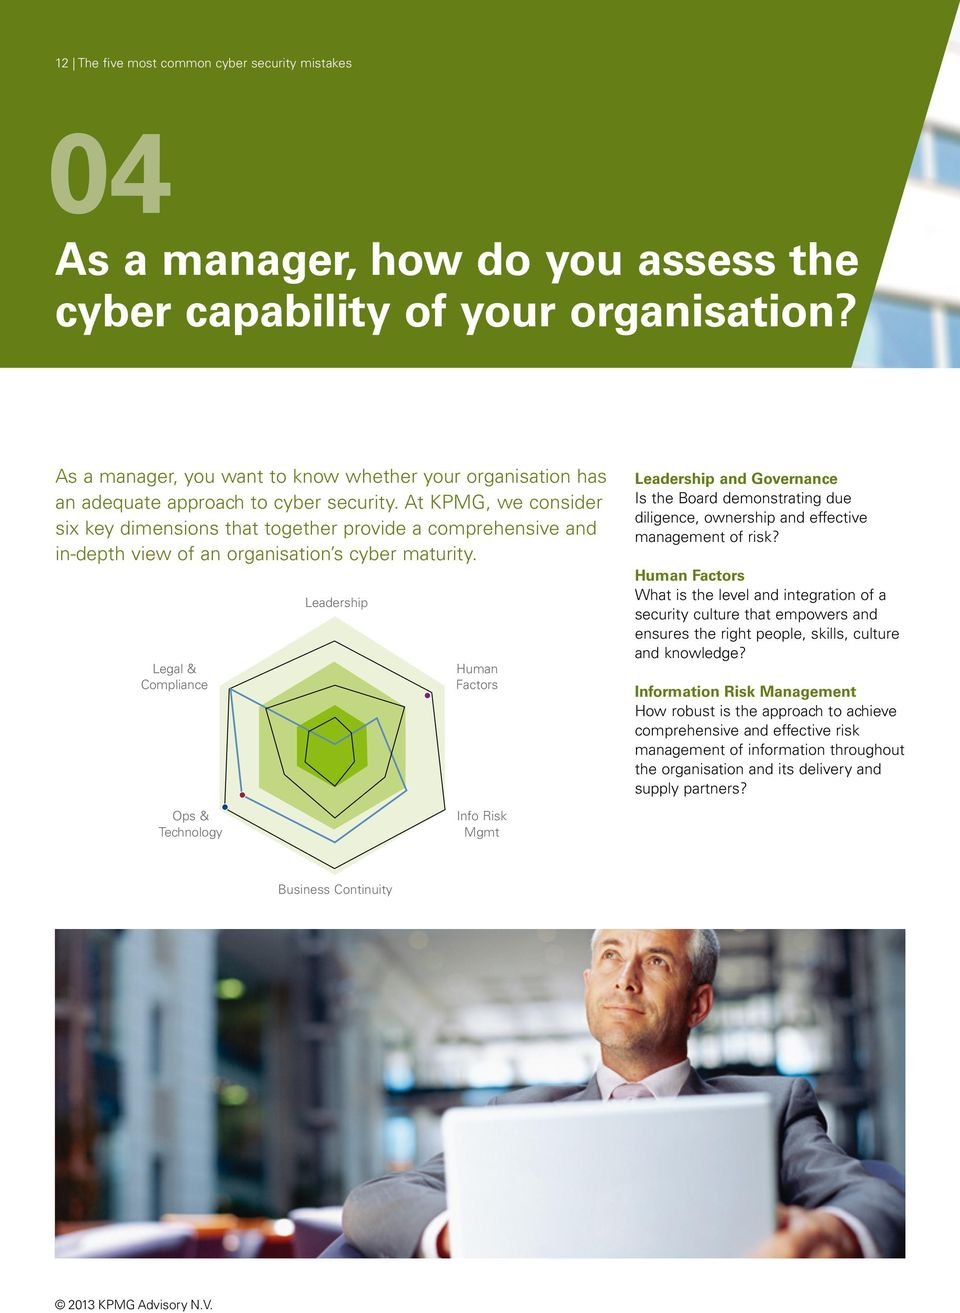 At KPMG, we consider six key dimensions that together provide a comprehensive and in-depth view of an organisation s cyber maturity.